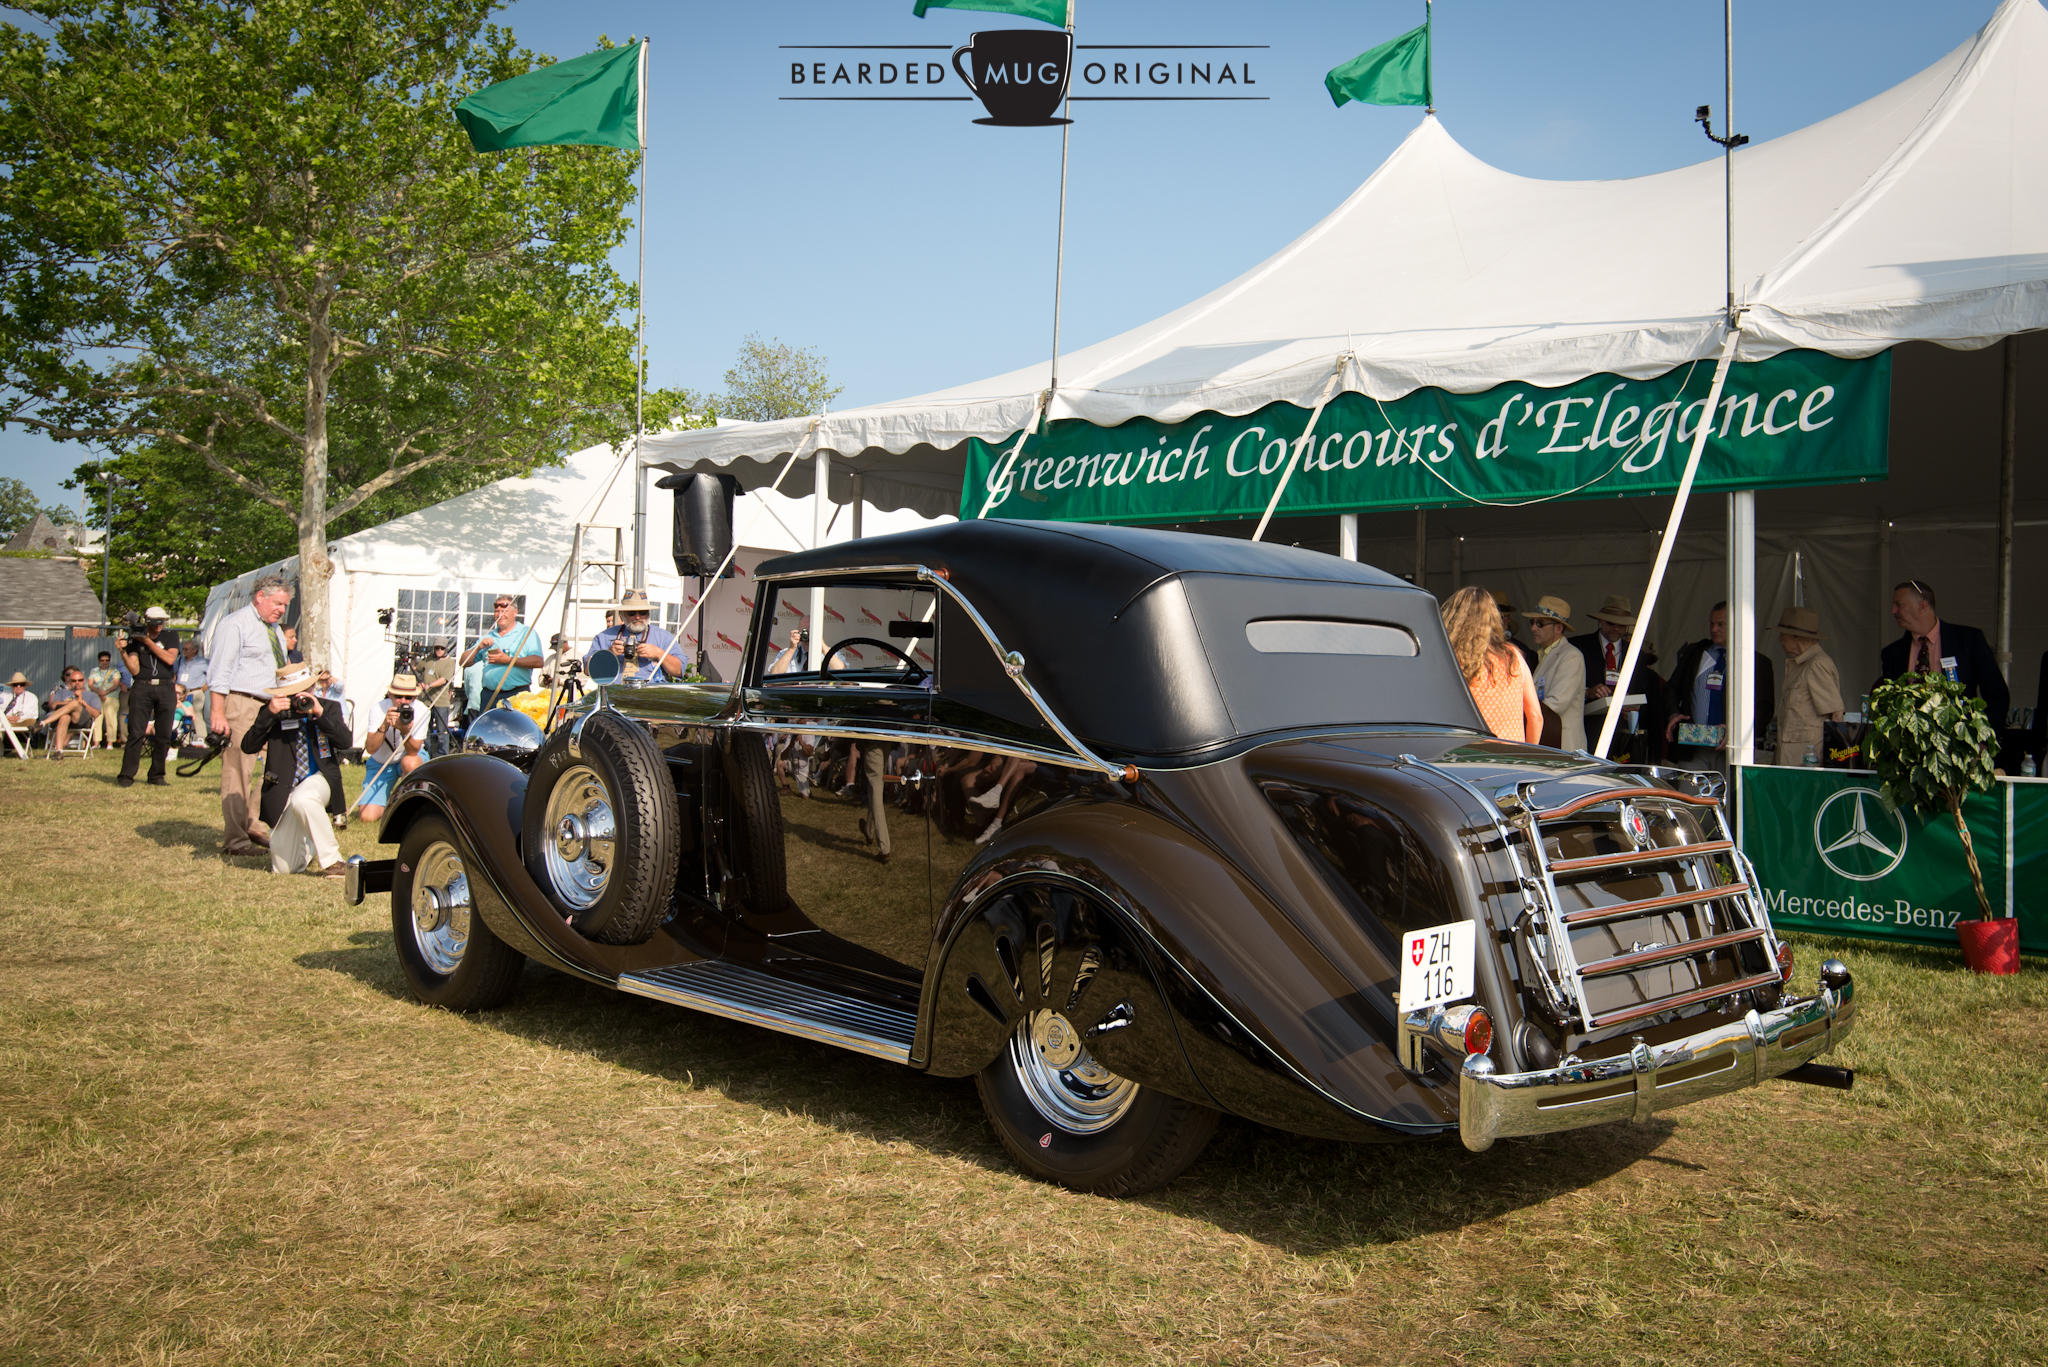 The stunningly unique 1935 Graber-bodied Packard Model 1201 Convertible that took Best of Show for the Concours Americana.